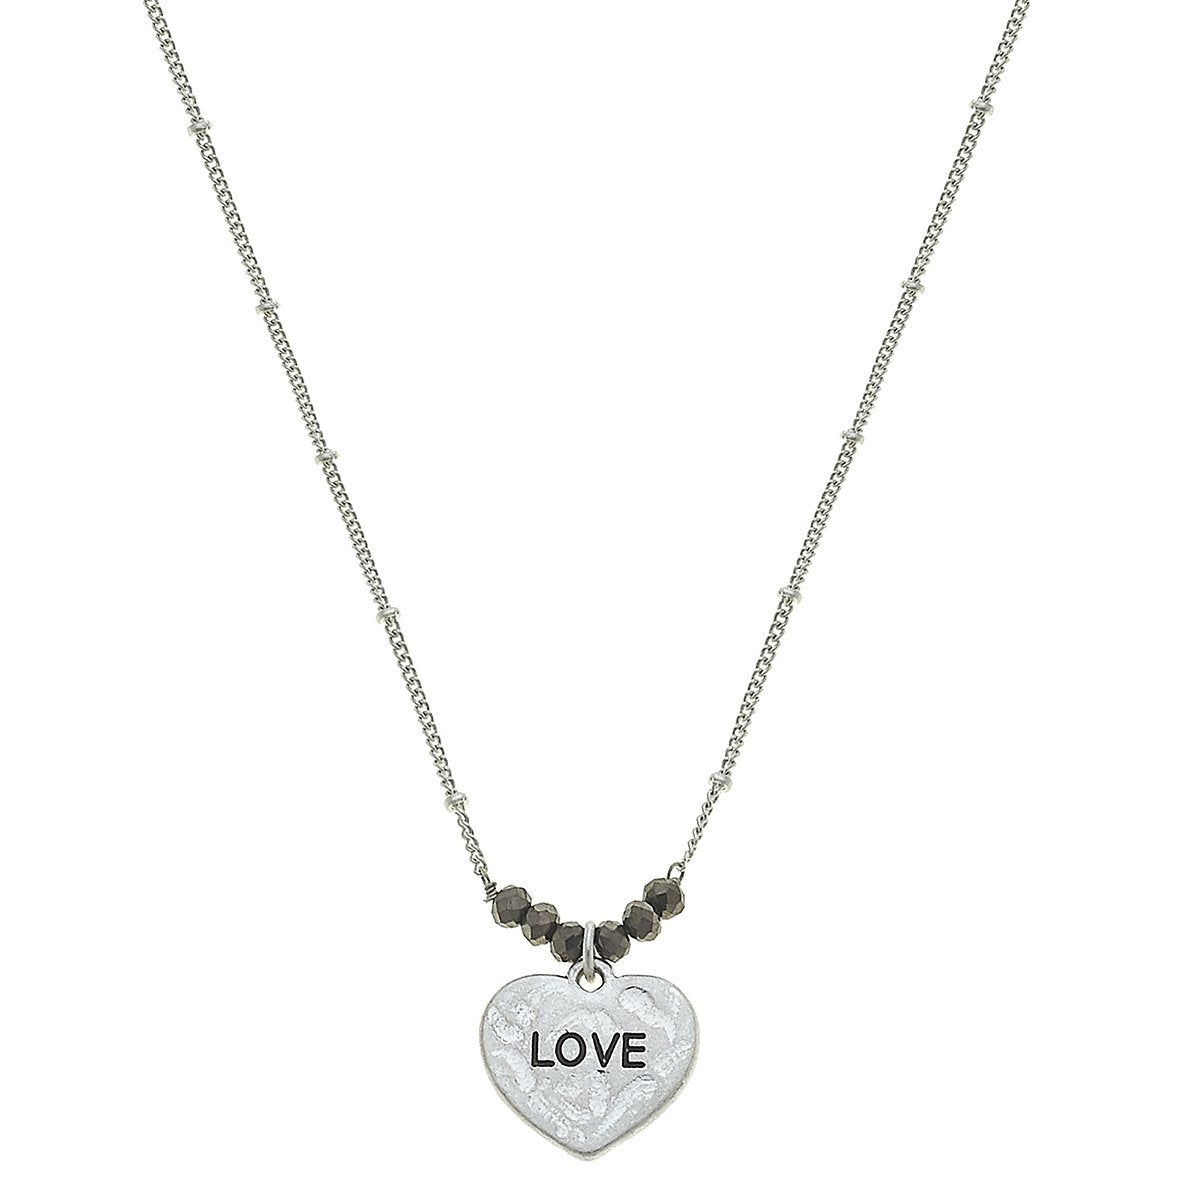 Love Heart Necklace in Worn Silver